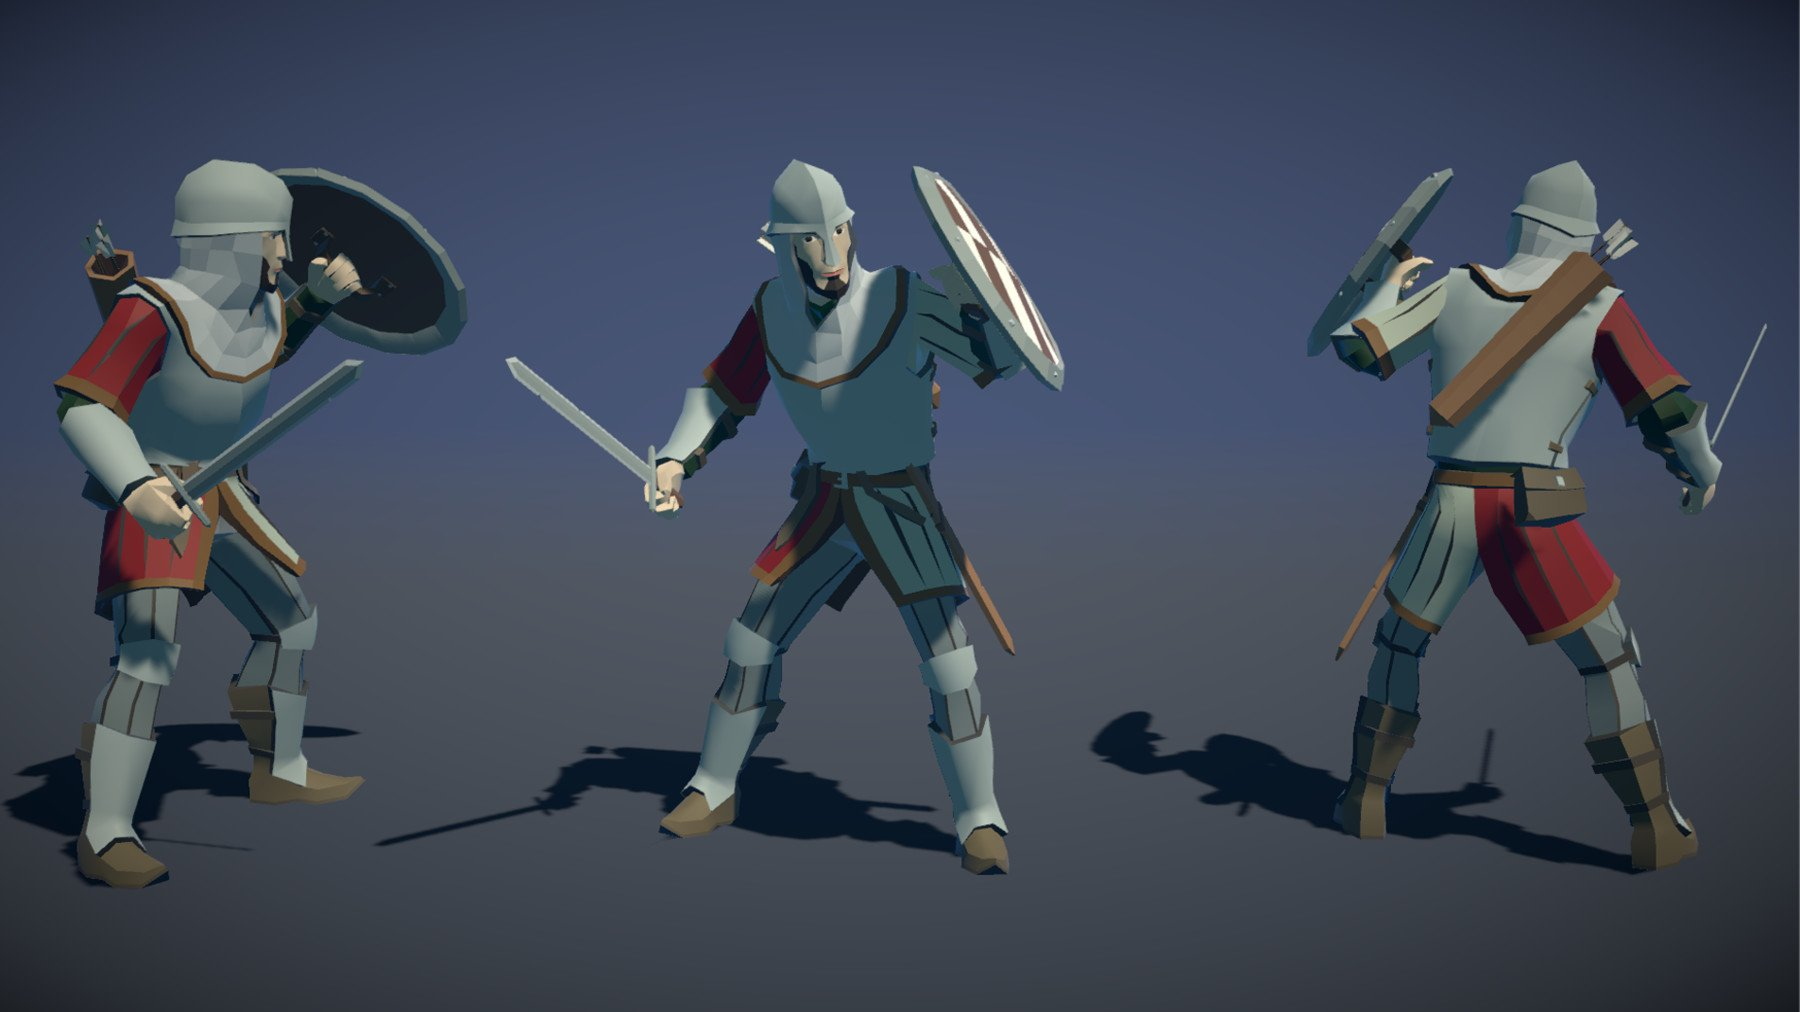 Pt medieval lowpoly characters soldier 02